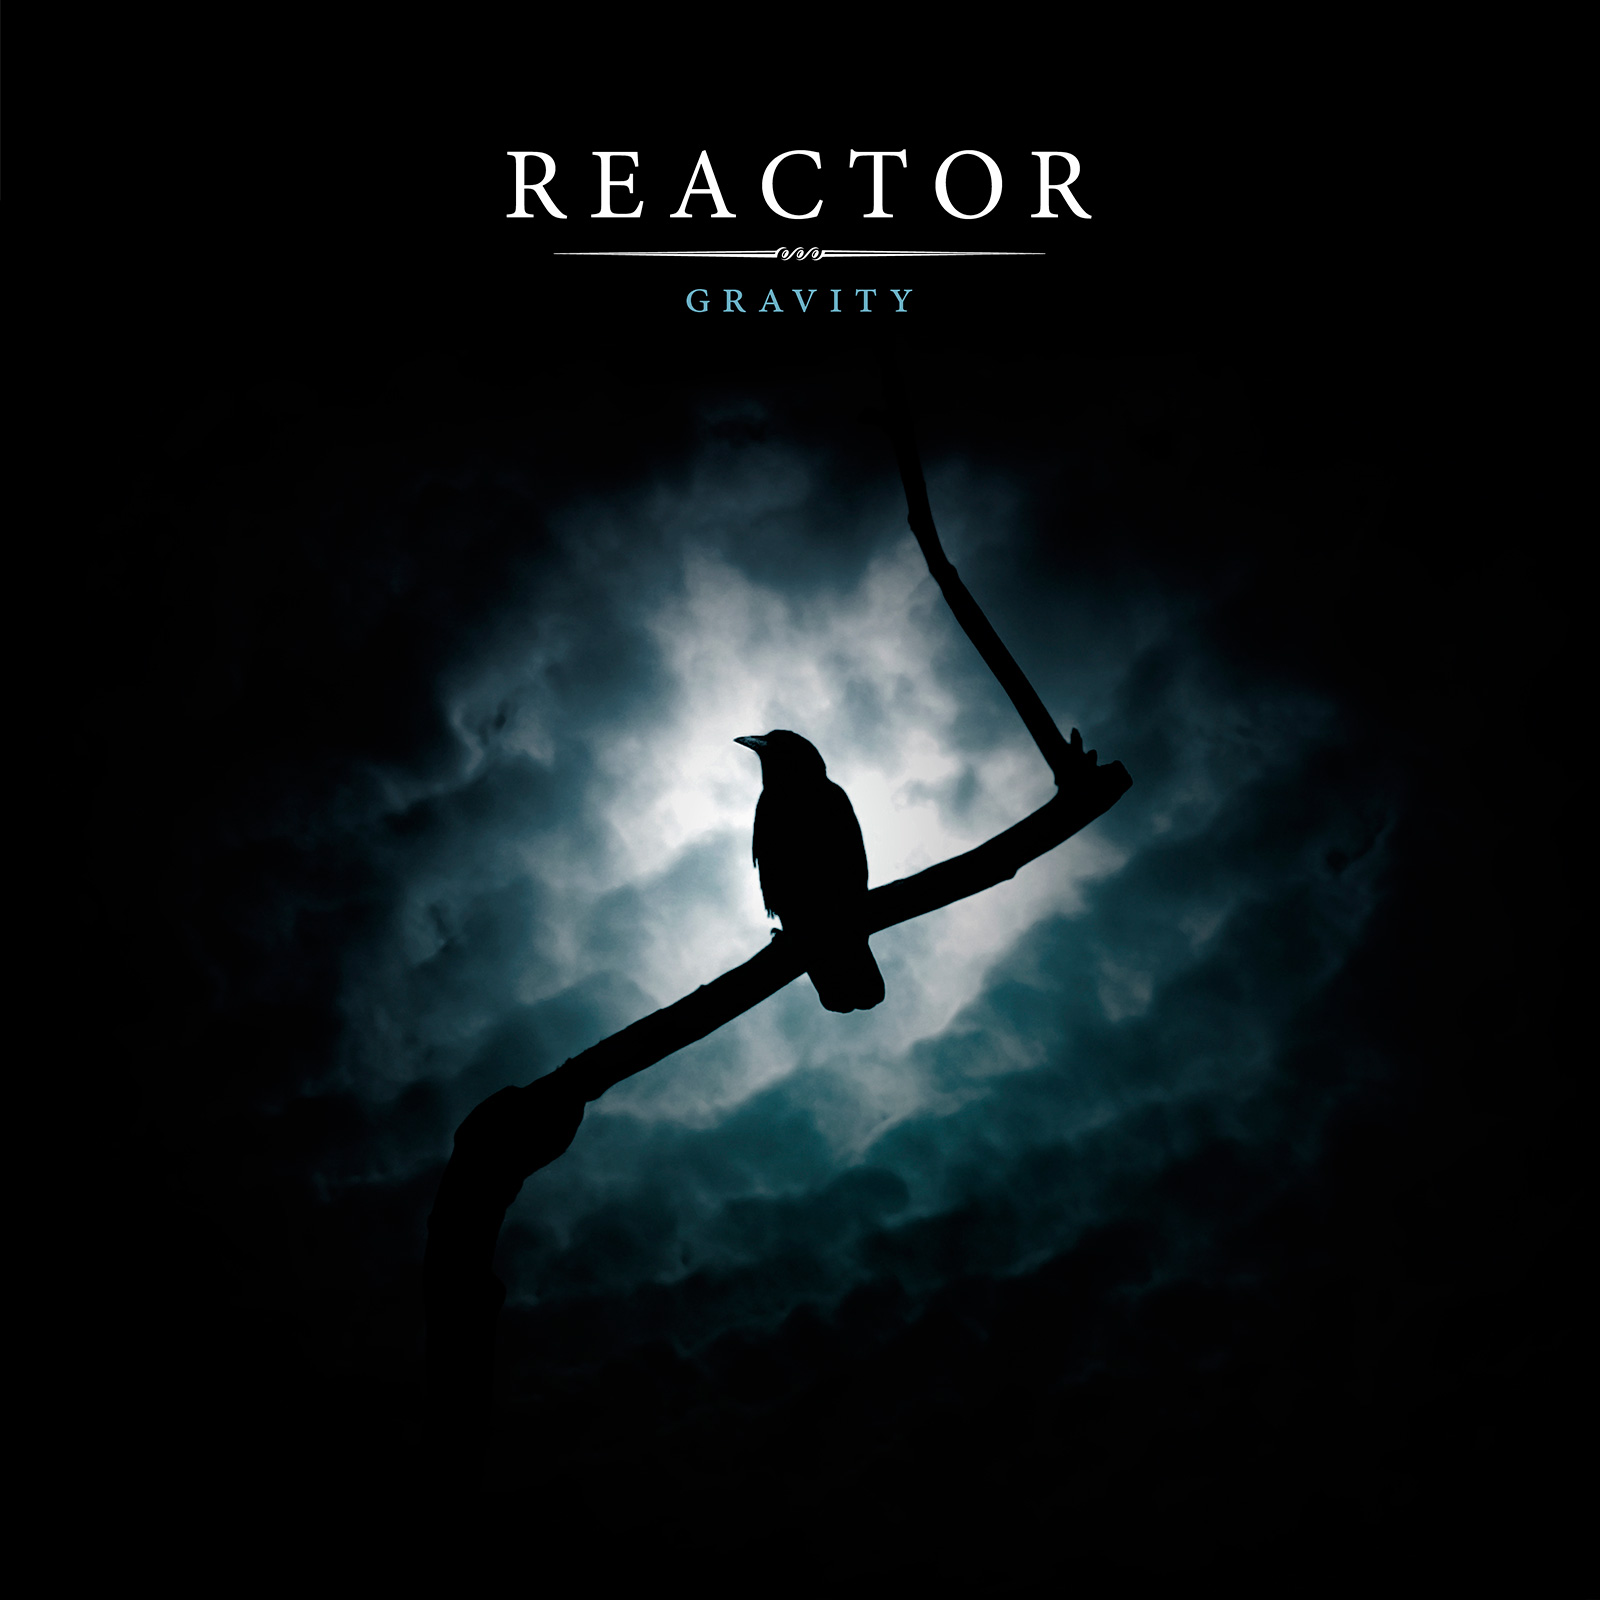 Gravity out now! - Reactor